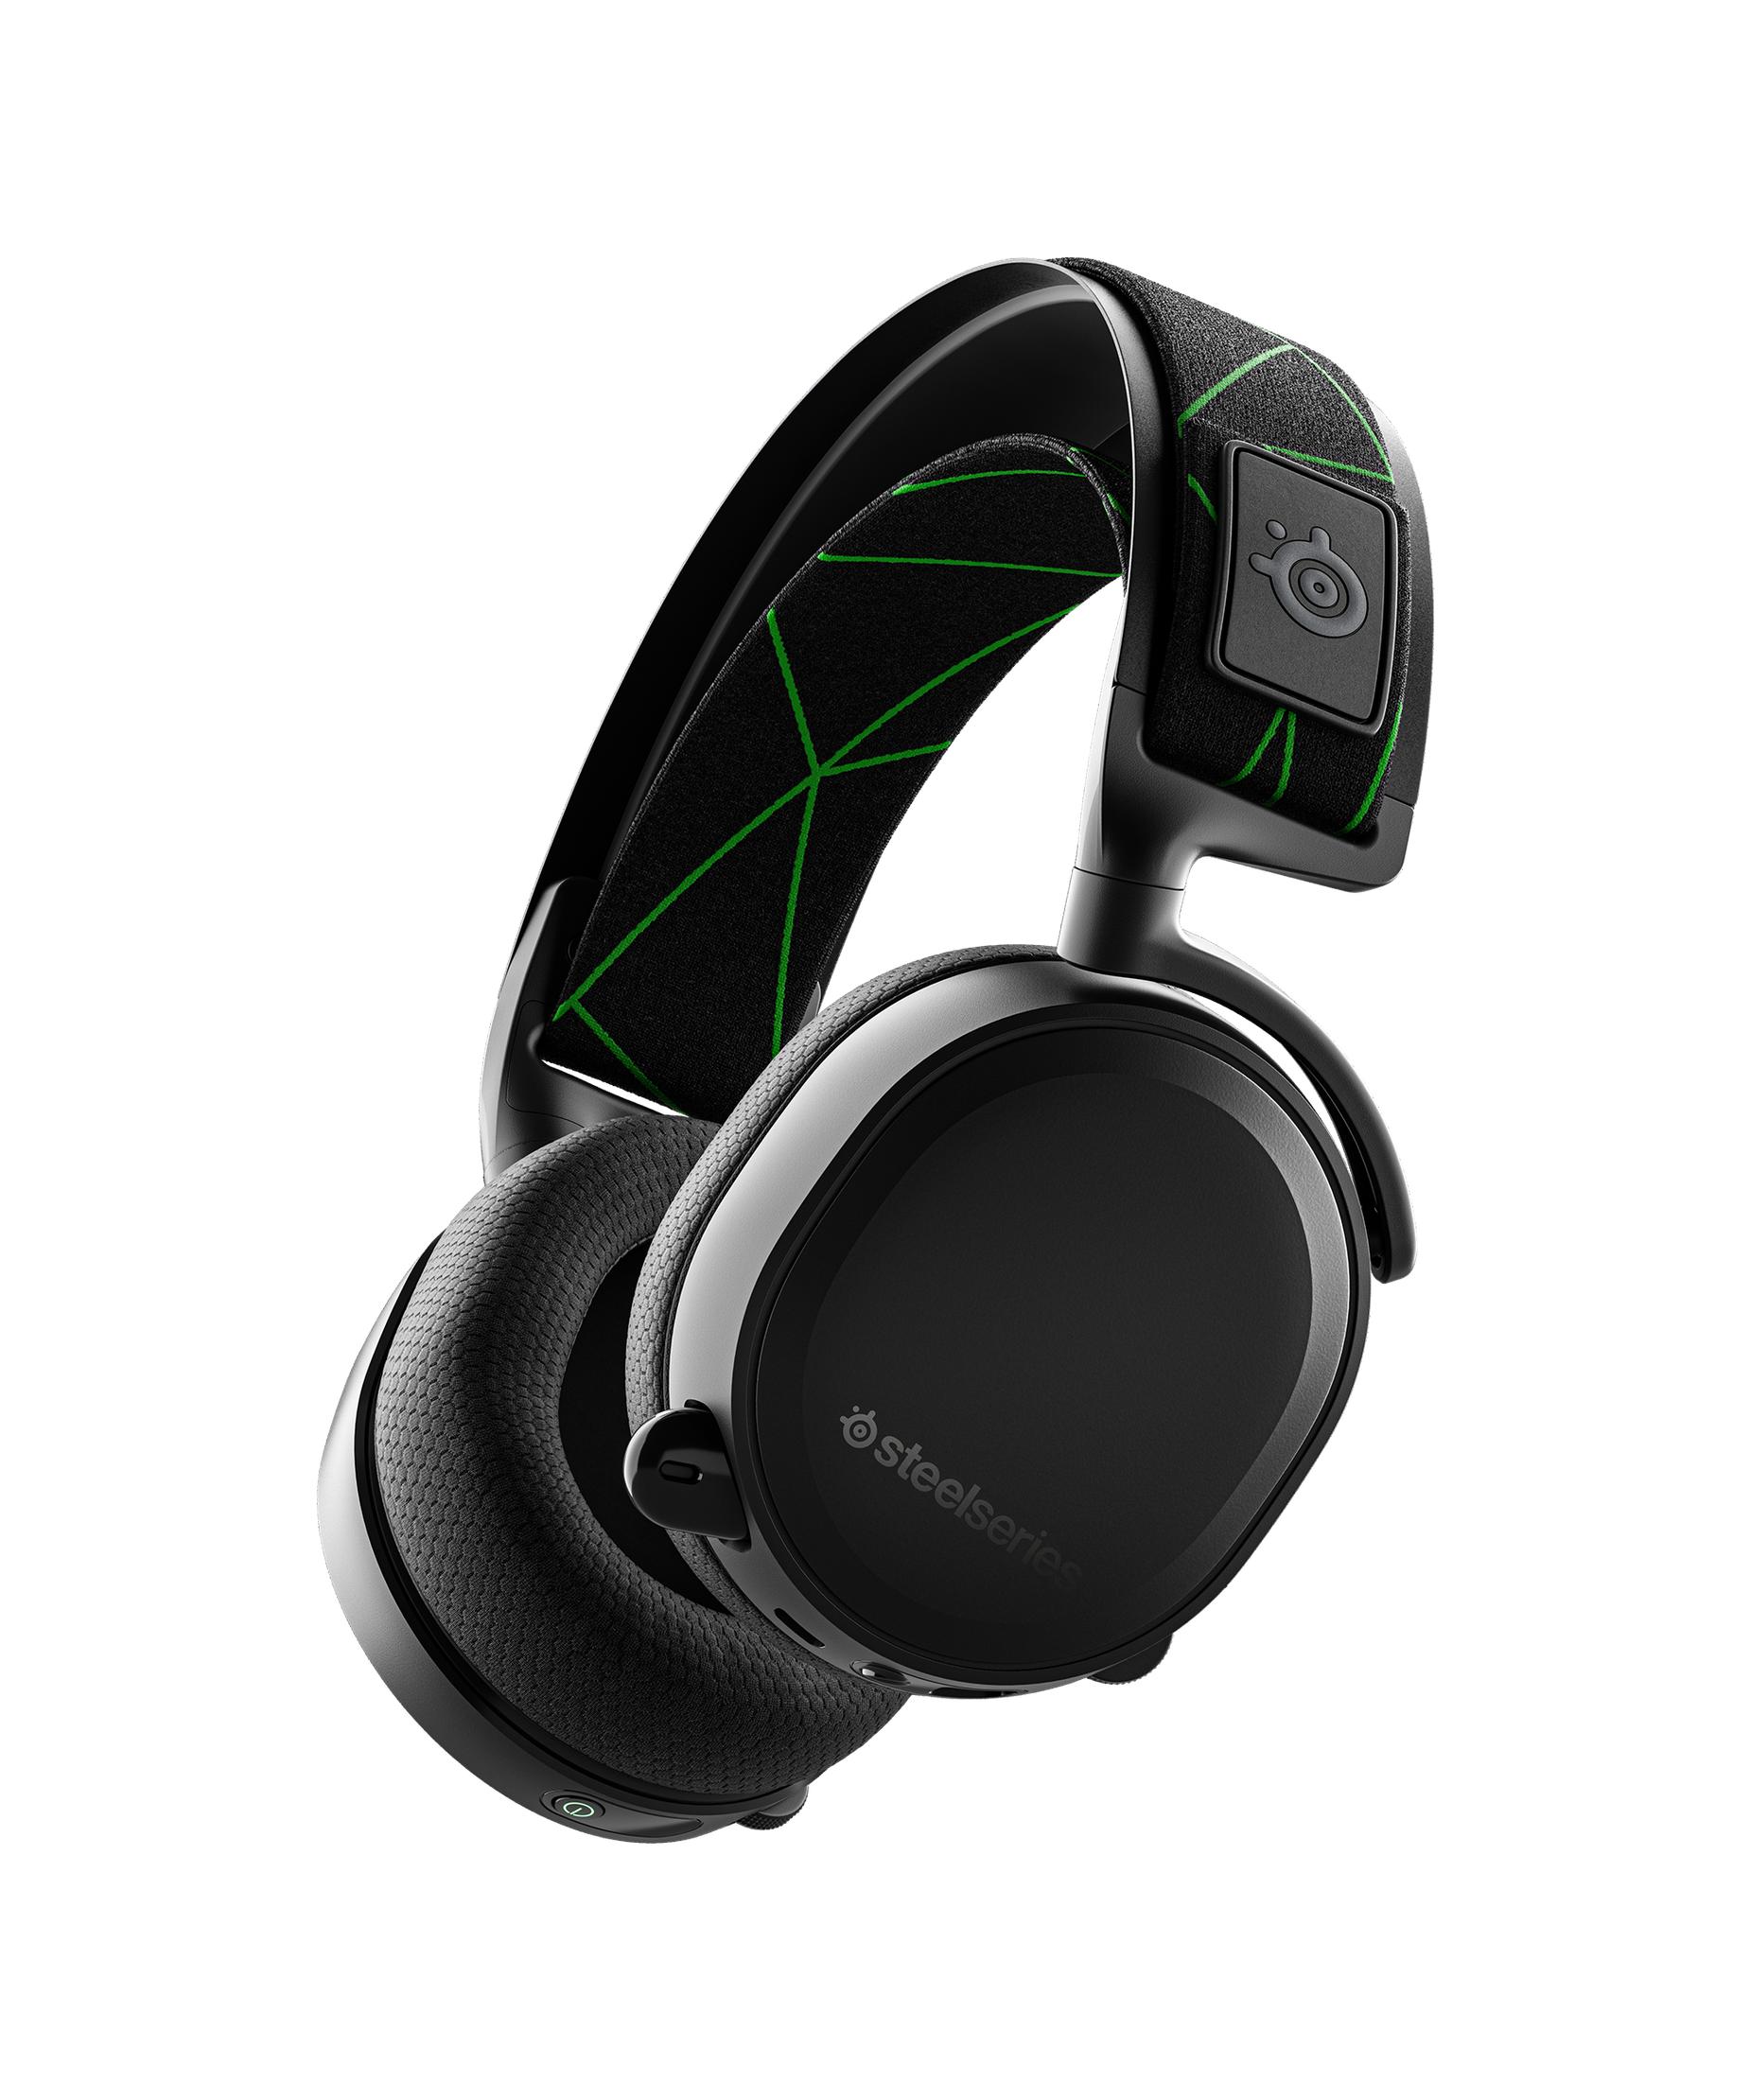 Product render of headset floating in blank space